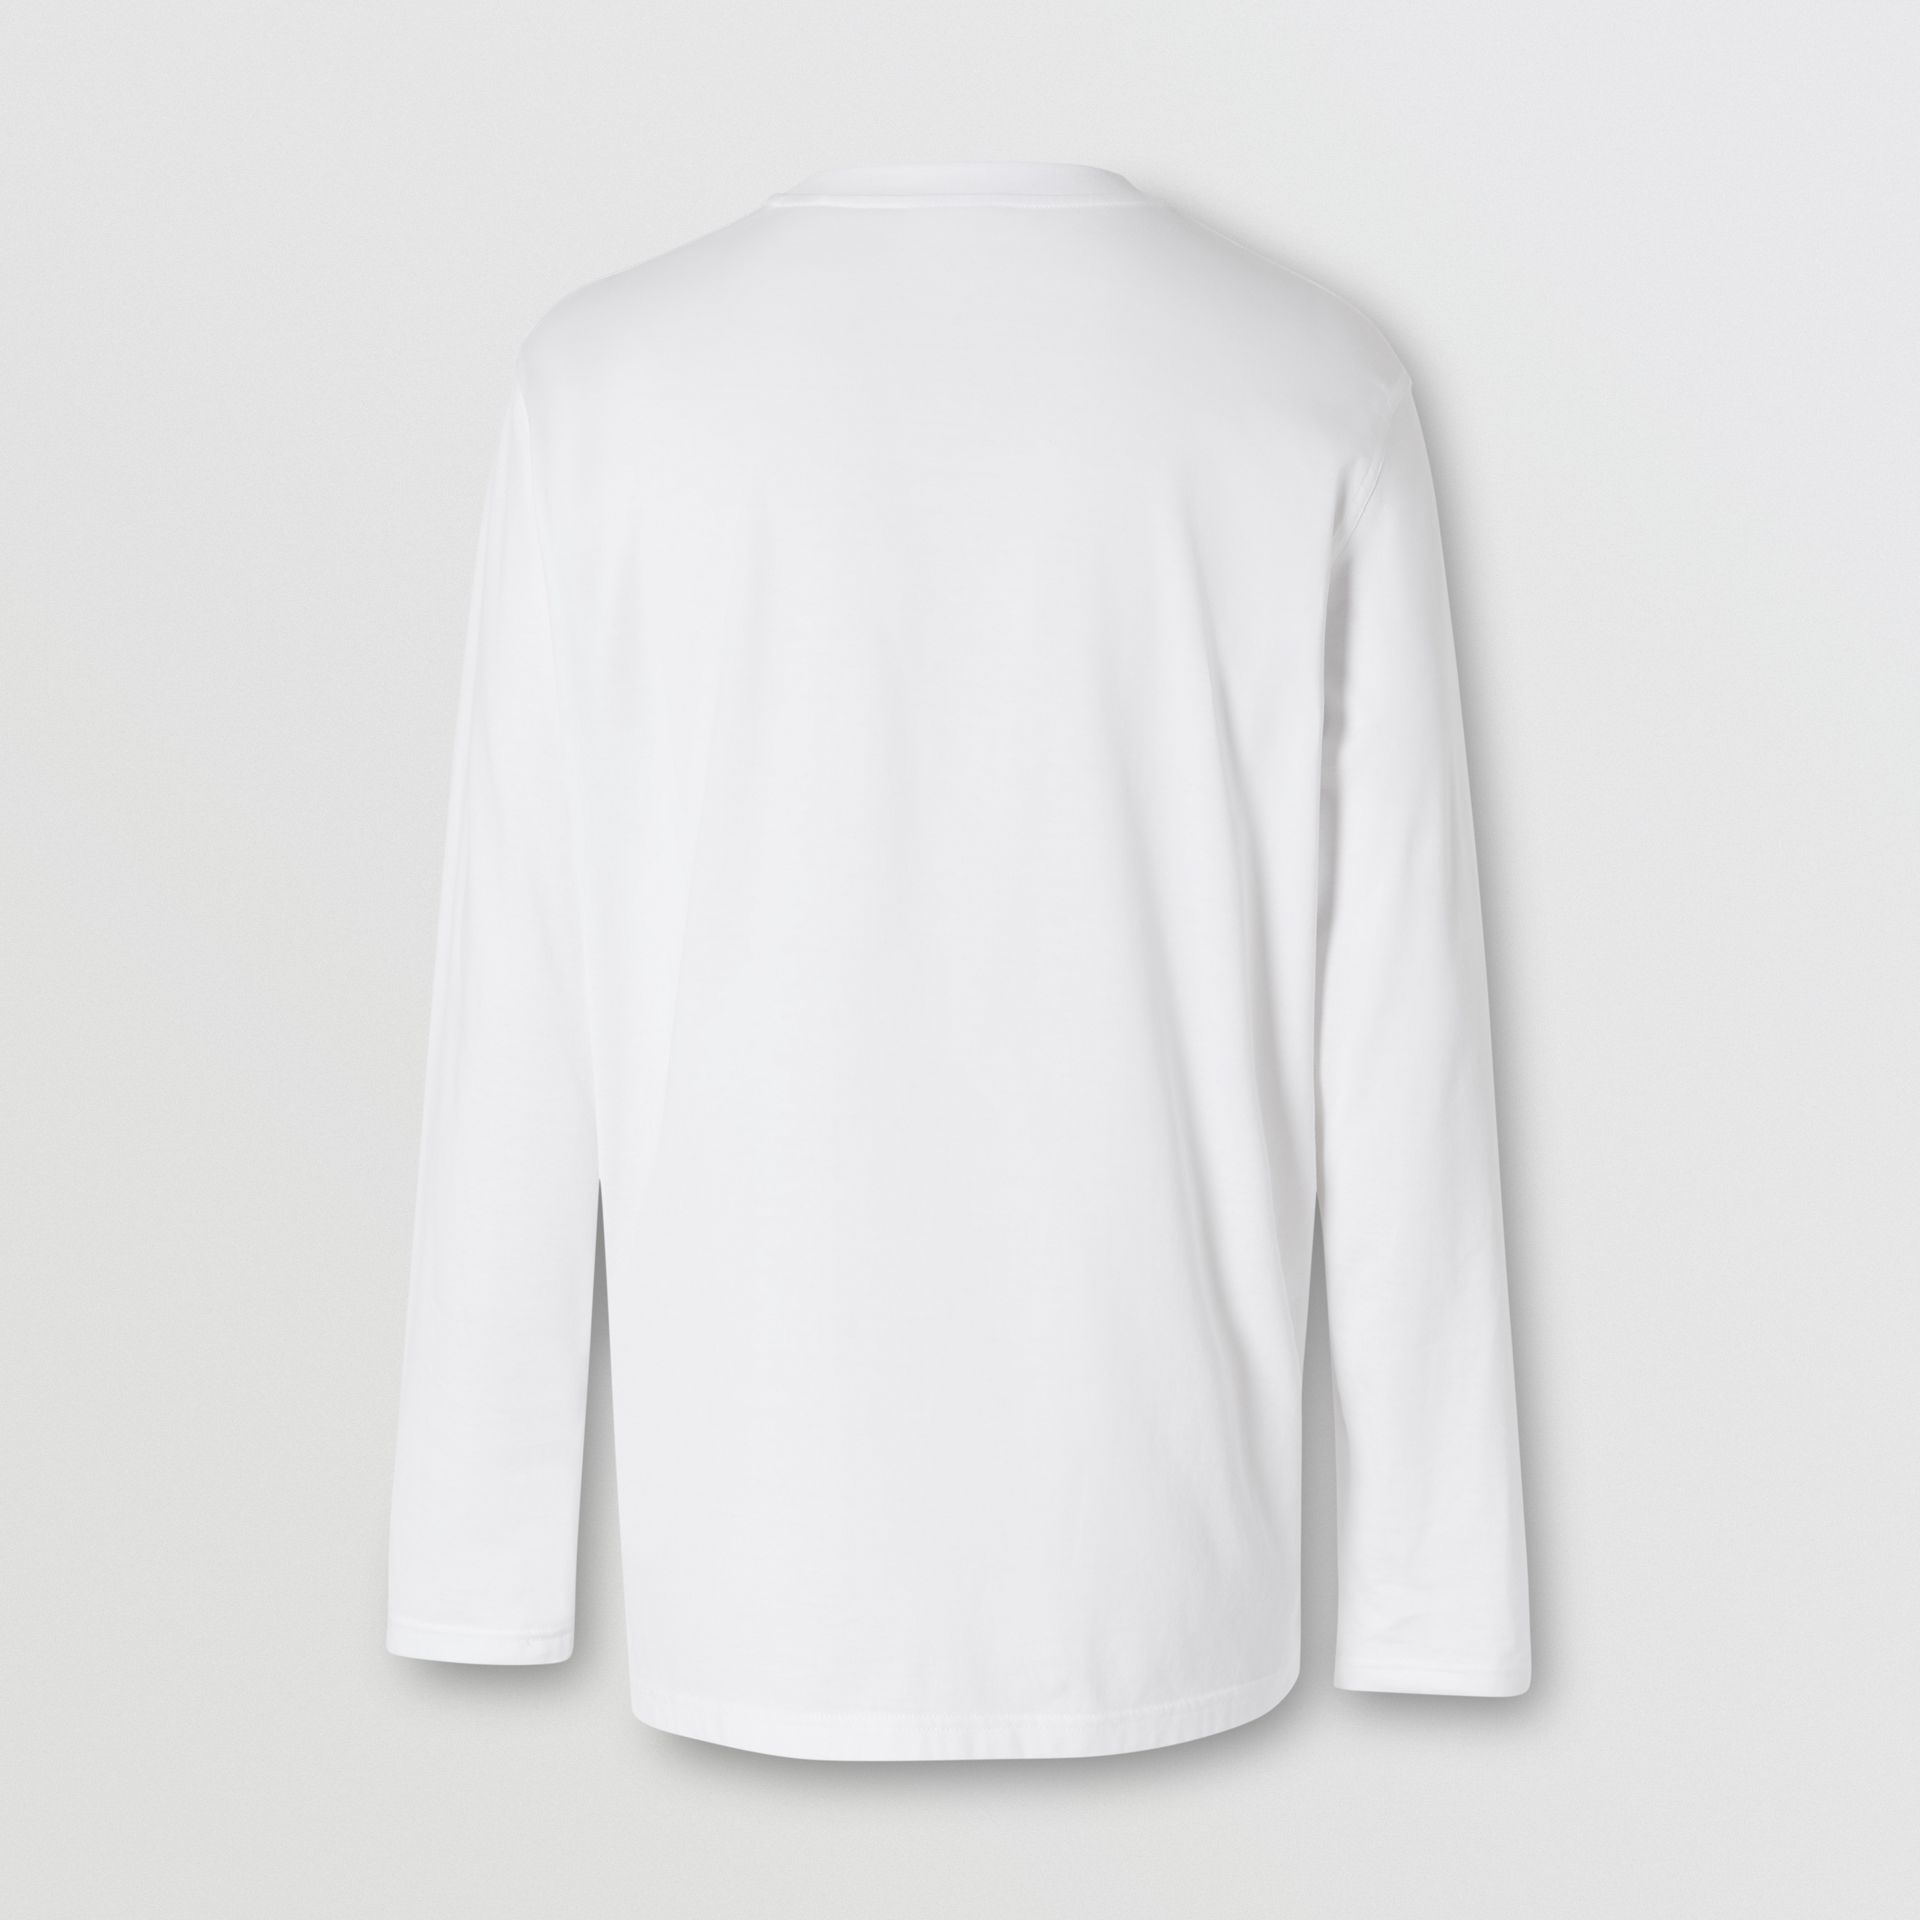 Long-sleeve Monogram Motif Cotton Top in White - Men | Burberry - gallery image 5